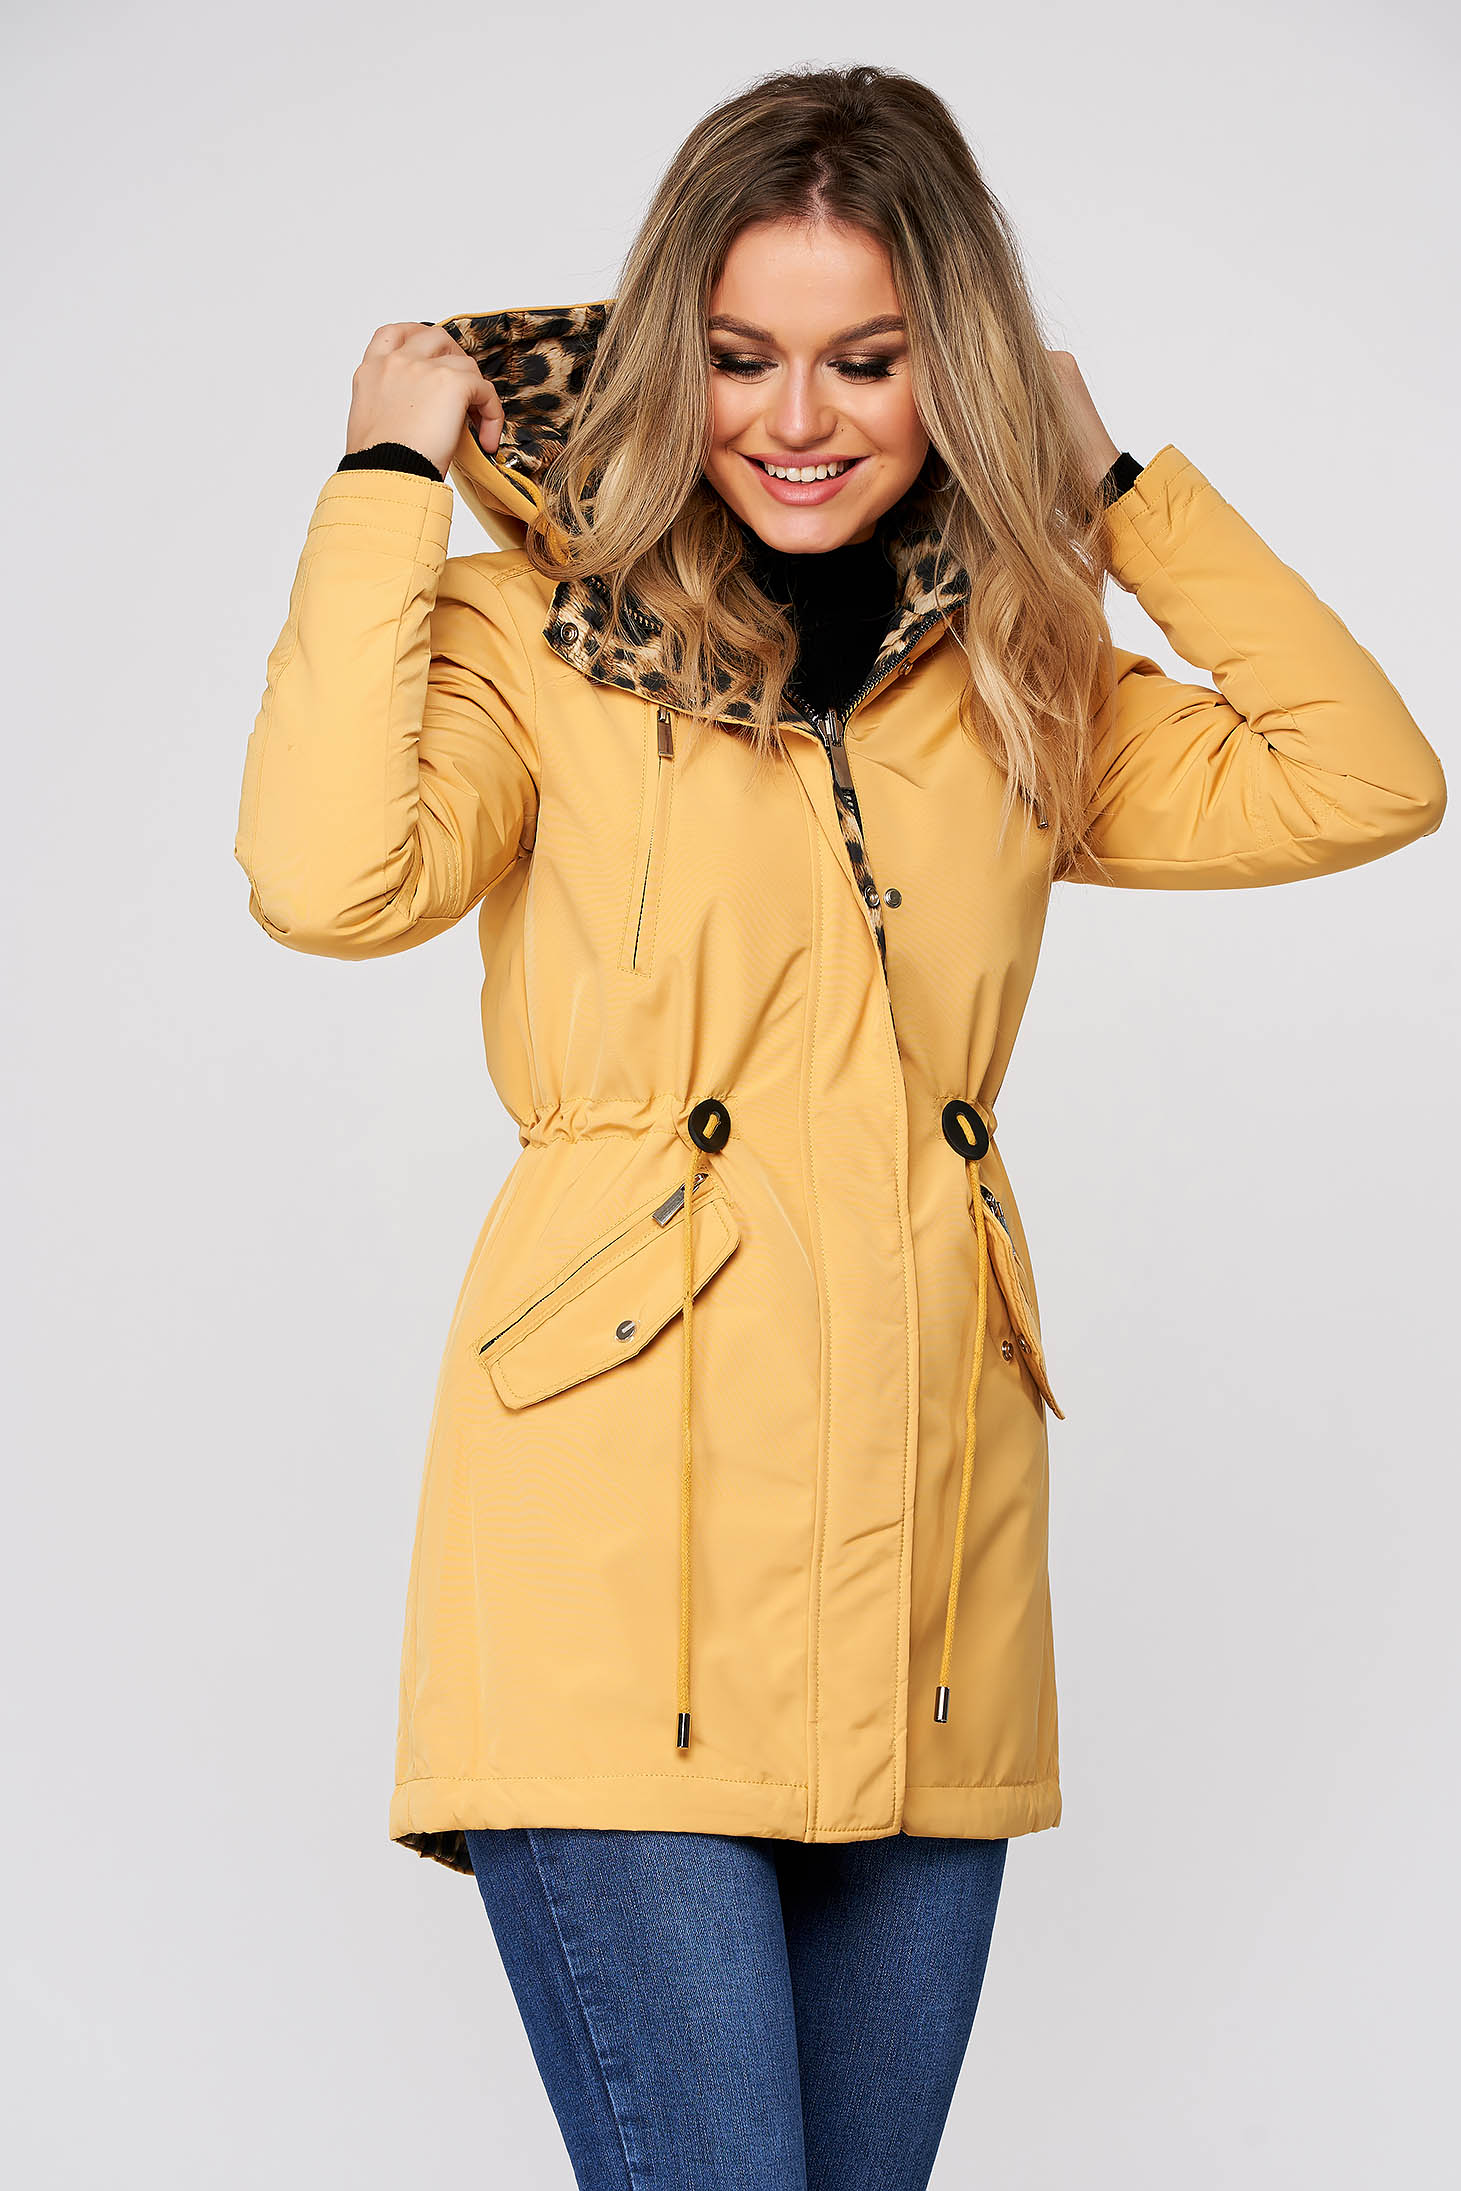 Yellow jacket casual from slicker double-faced is fastened around the waist with a ribbon